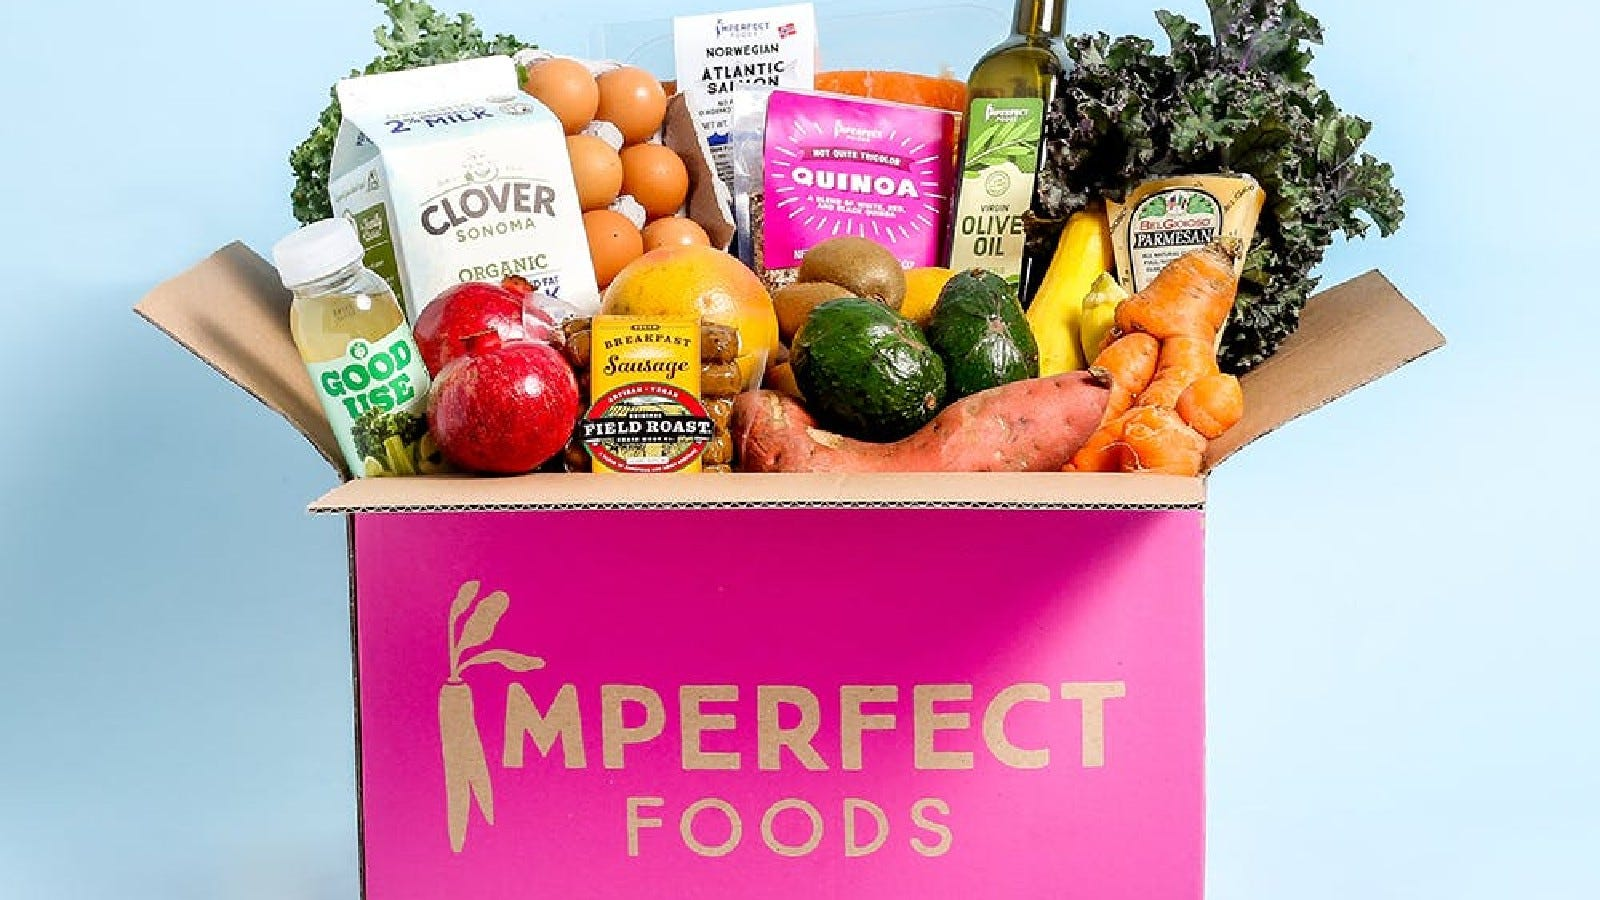 An Imperfect Foods box filled with fruits, veggies, milk, coffee, and other groceries.